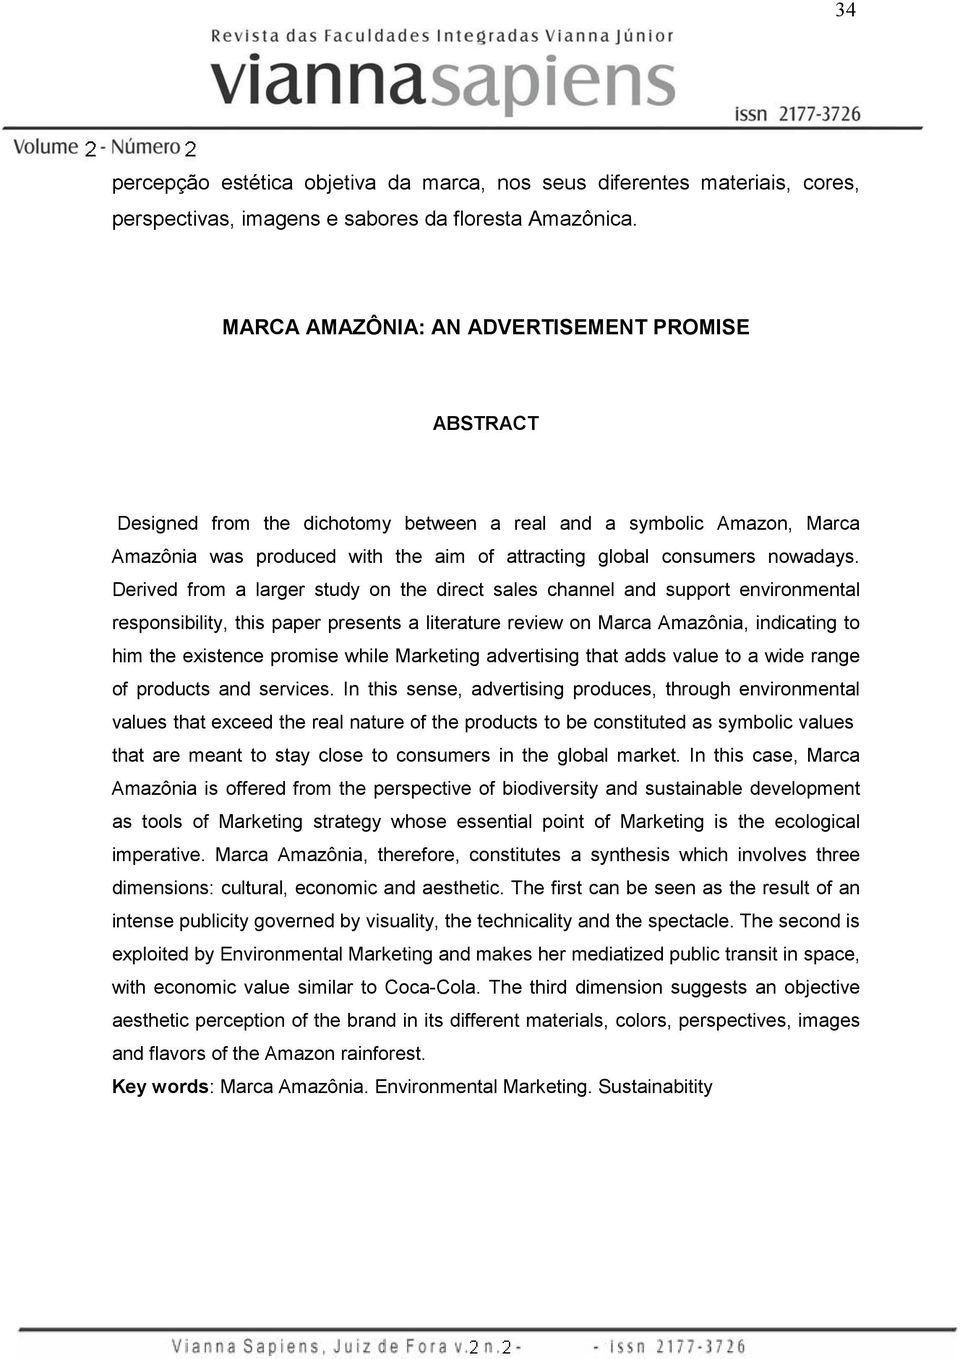 Derived from a larger study on the direct sales channel and support environmental responsibility, this paper presents a literature review on Marca Amazônia, indicating to him the existence promise